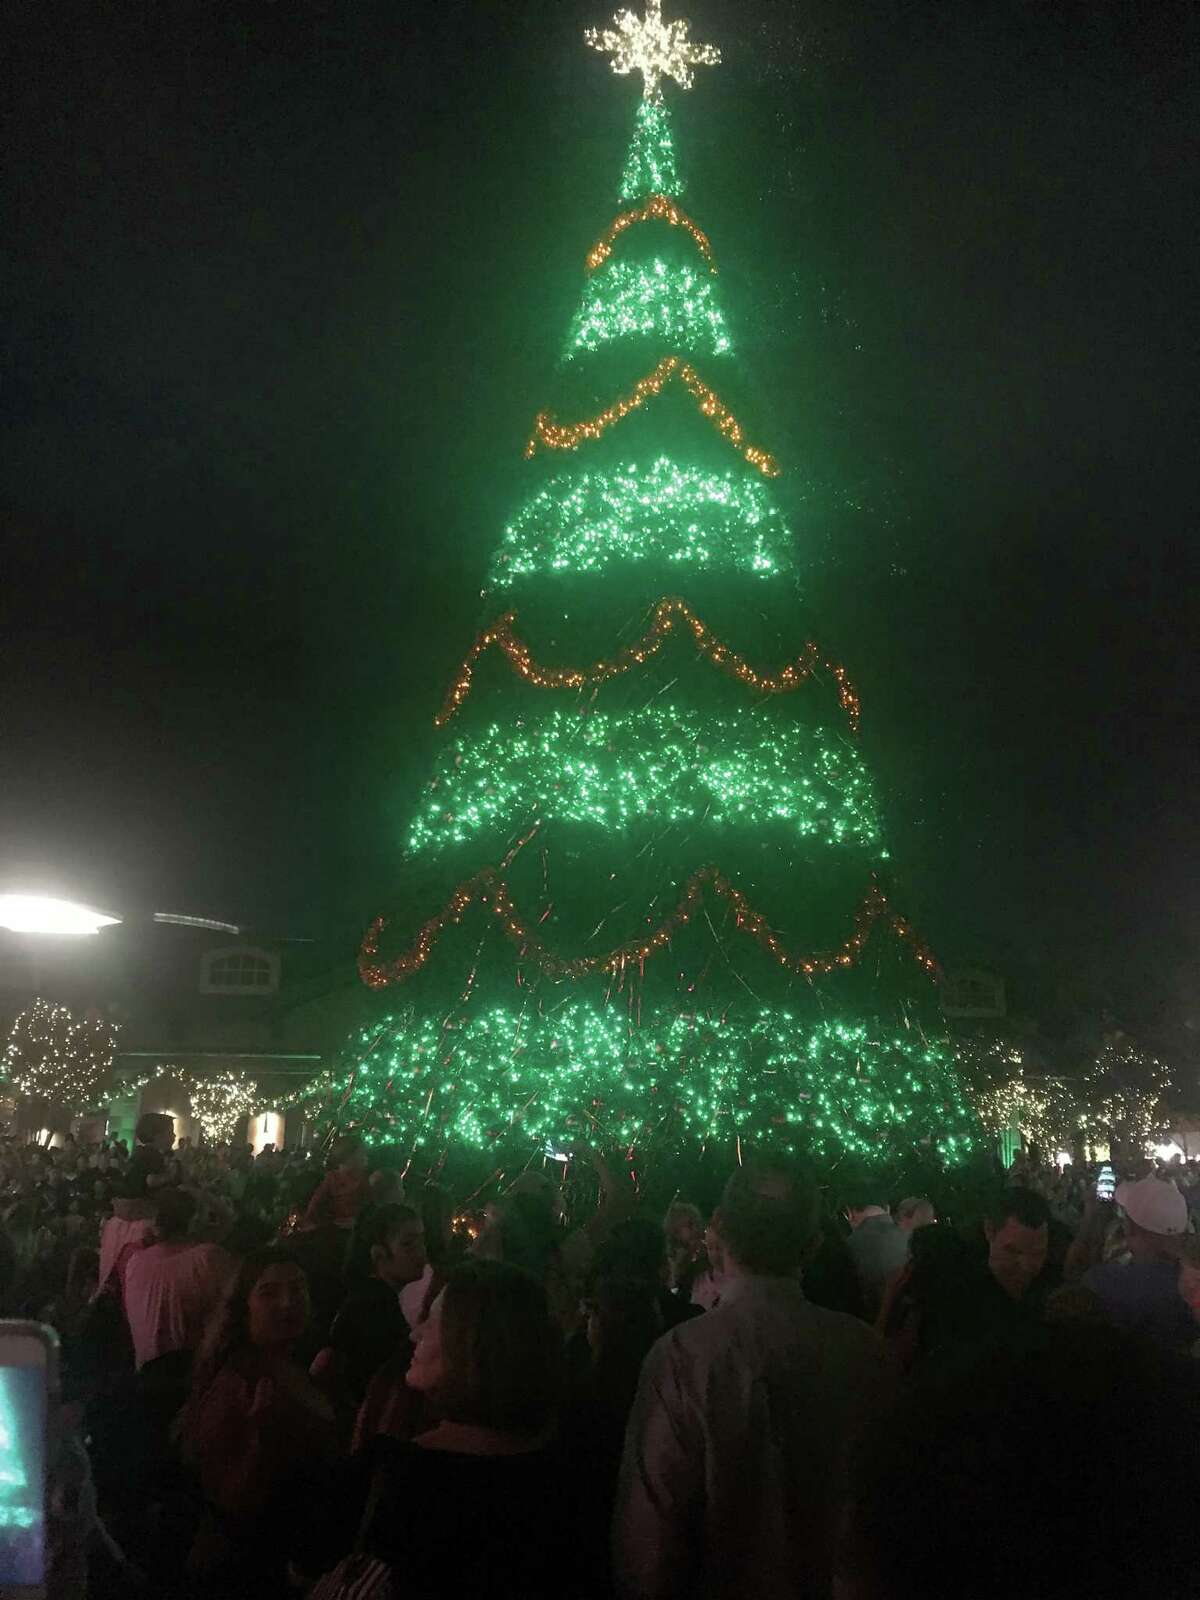 Nick Wolda introduced Kristen, Zach, Addison and Chance Belcher as the honorary 2017 Official Lighting Luminary at the Nov. 16, 2017, Luxury in Lights tree lighting ceremony on Market Street.